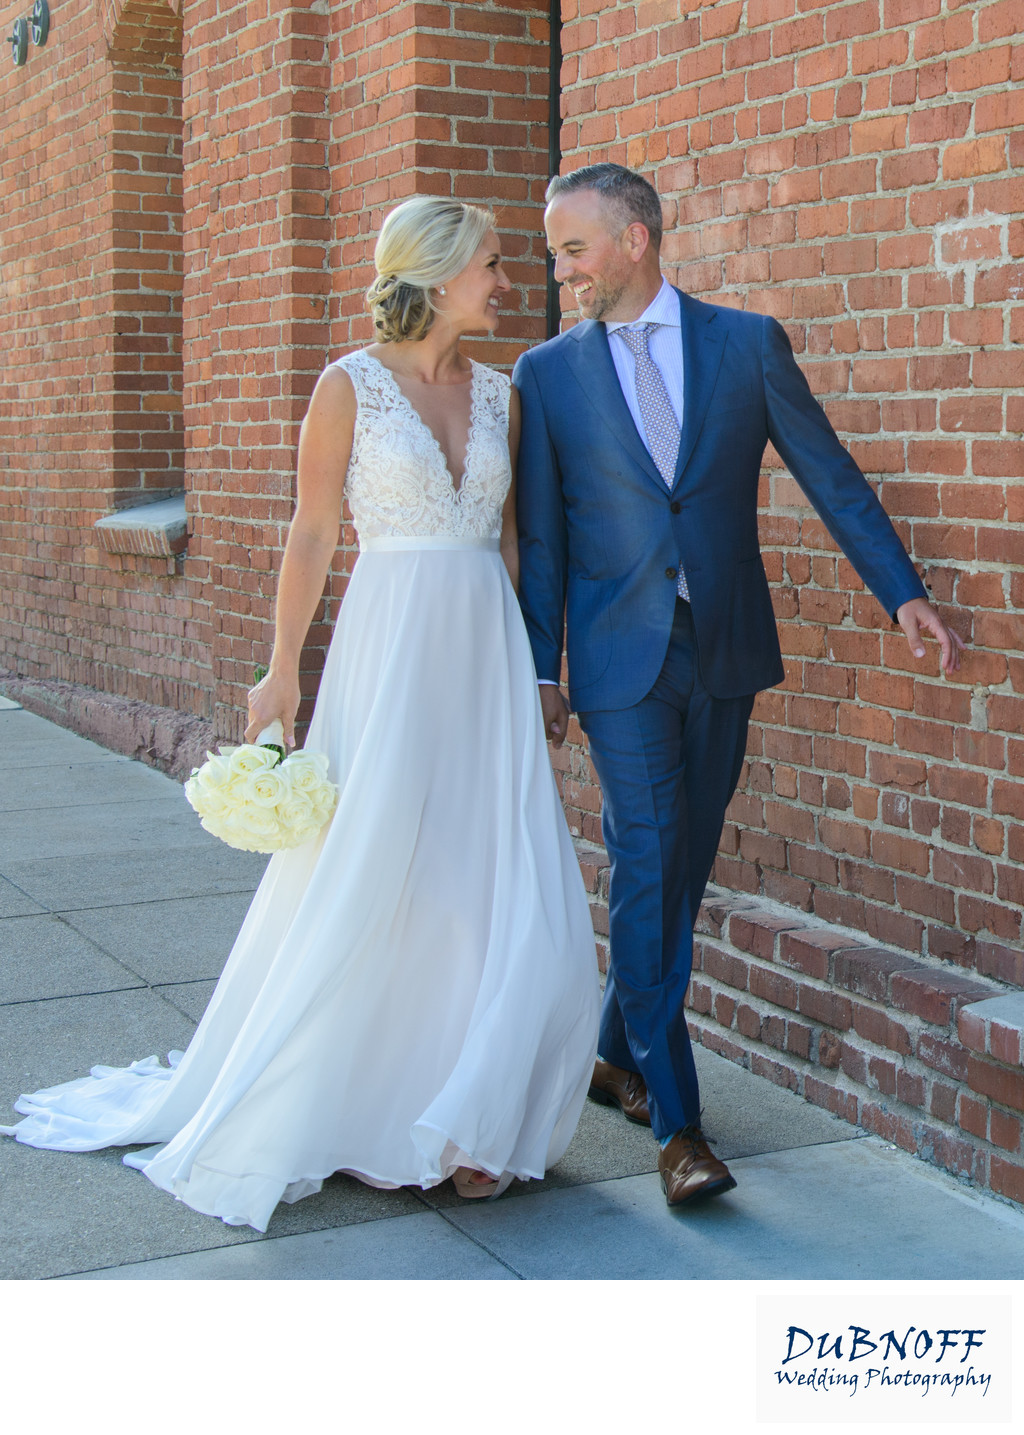 Wedding Walk in North Beach, San Francisco